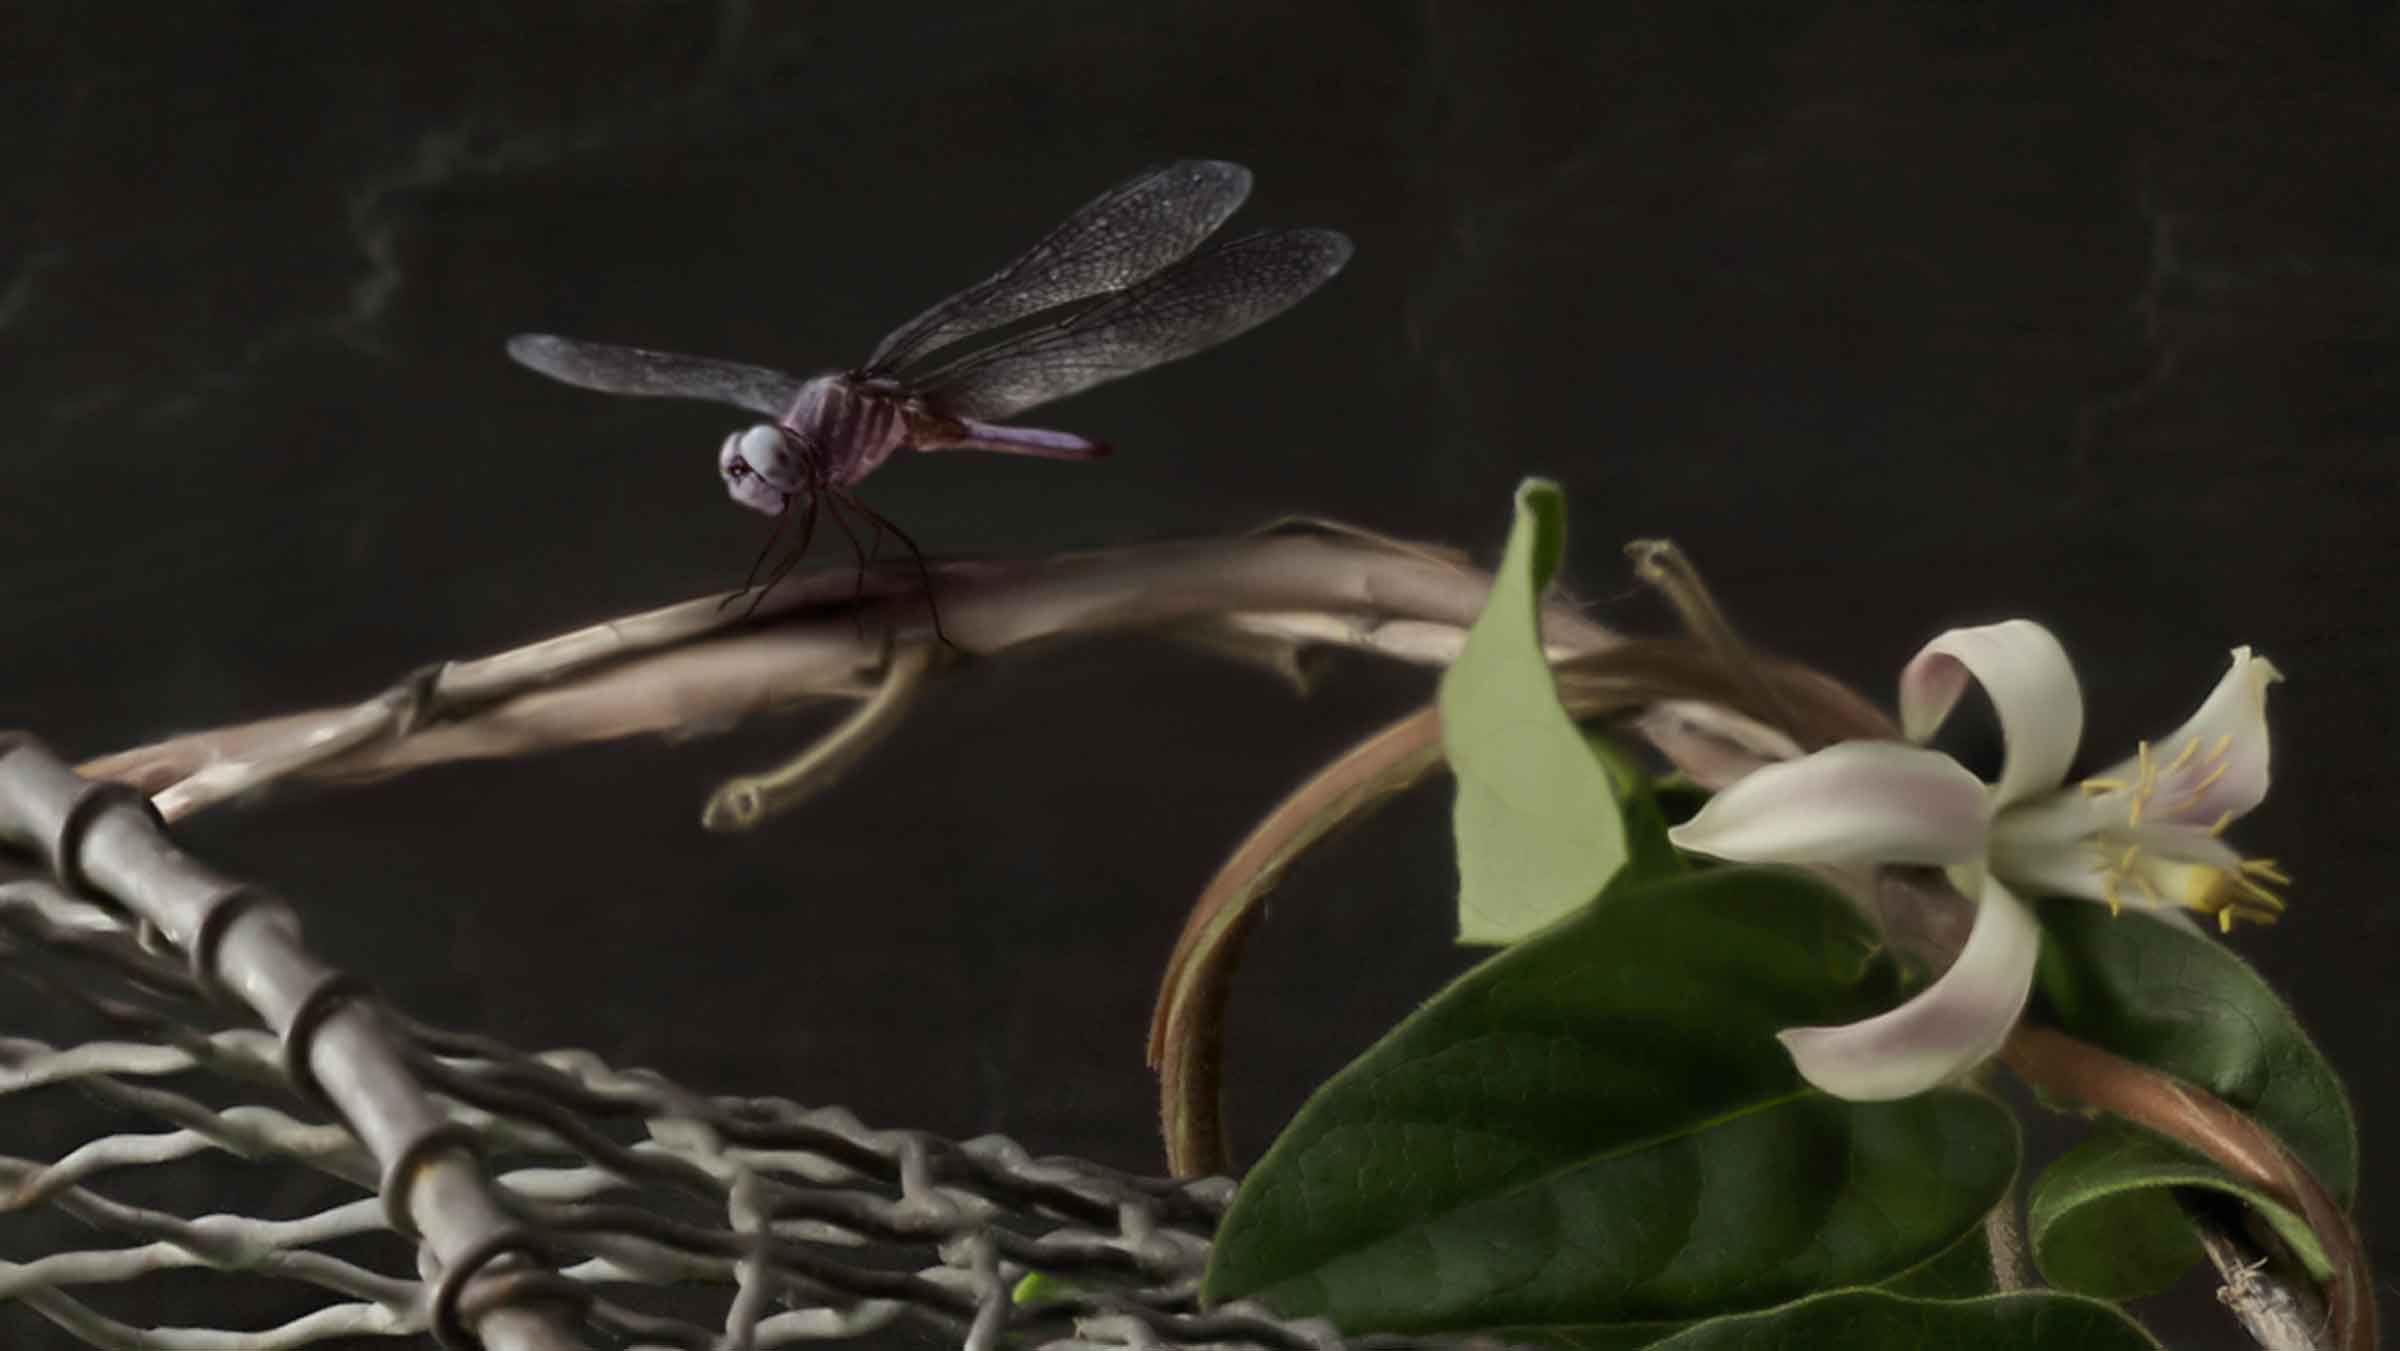 stroube-dragonfly-detail